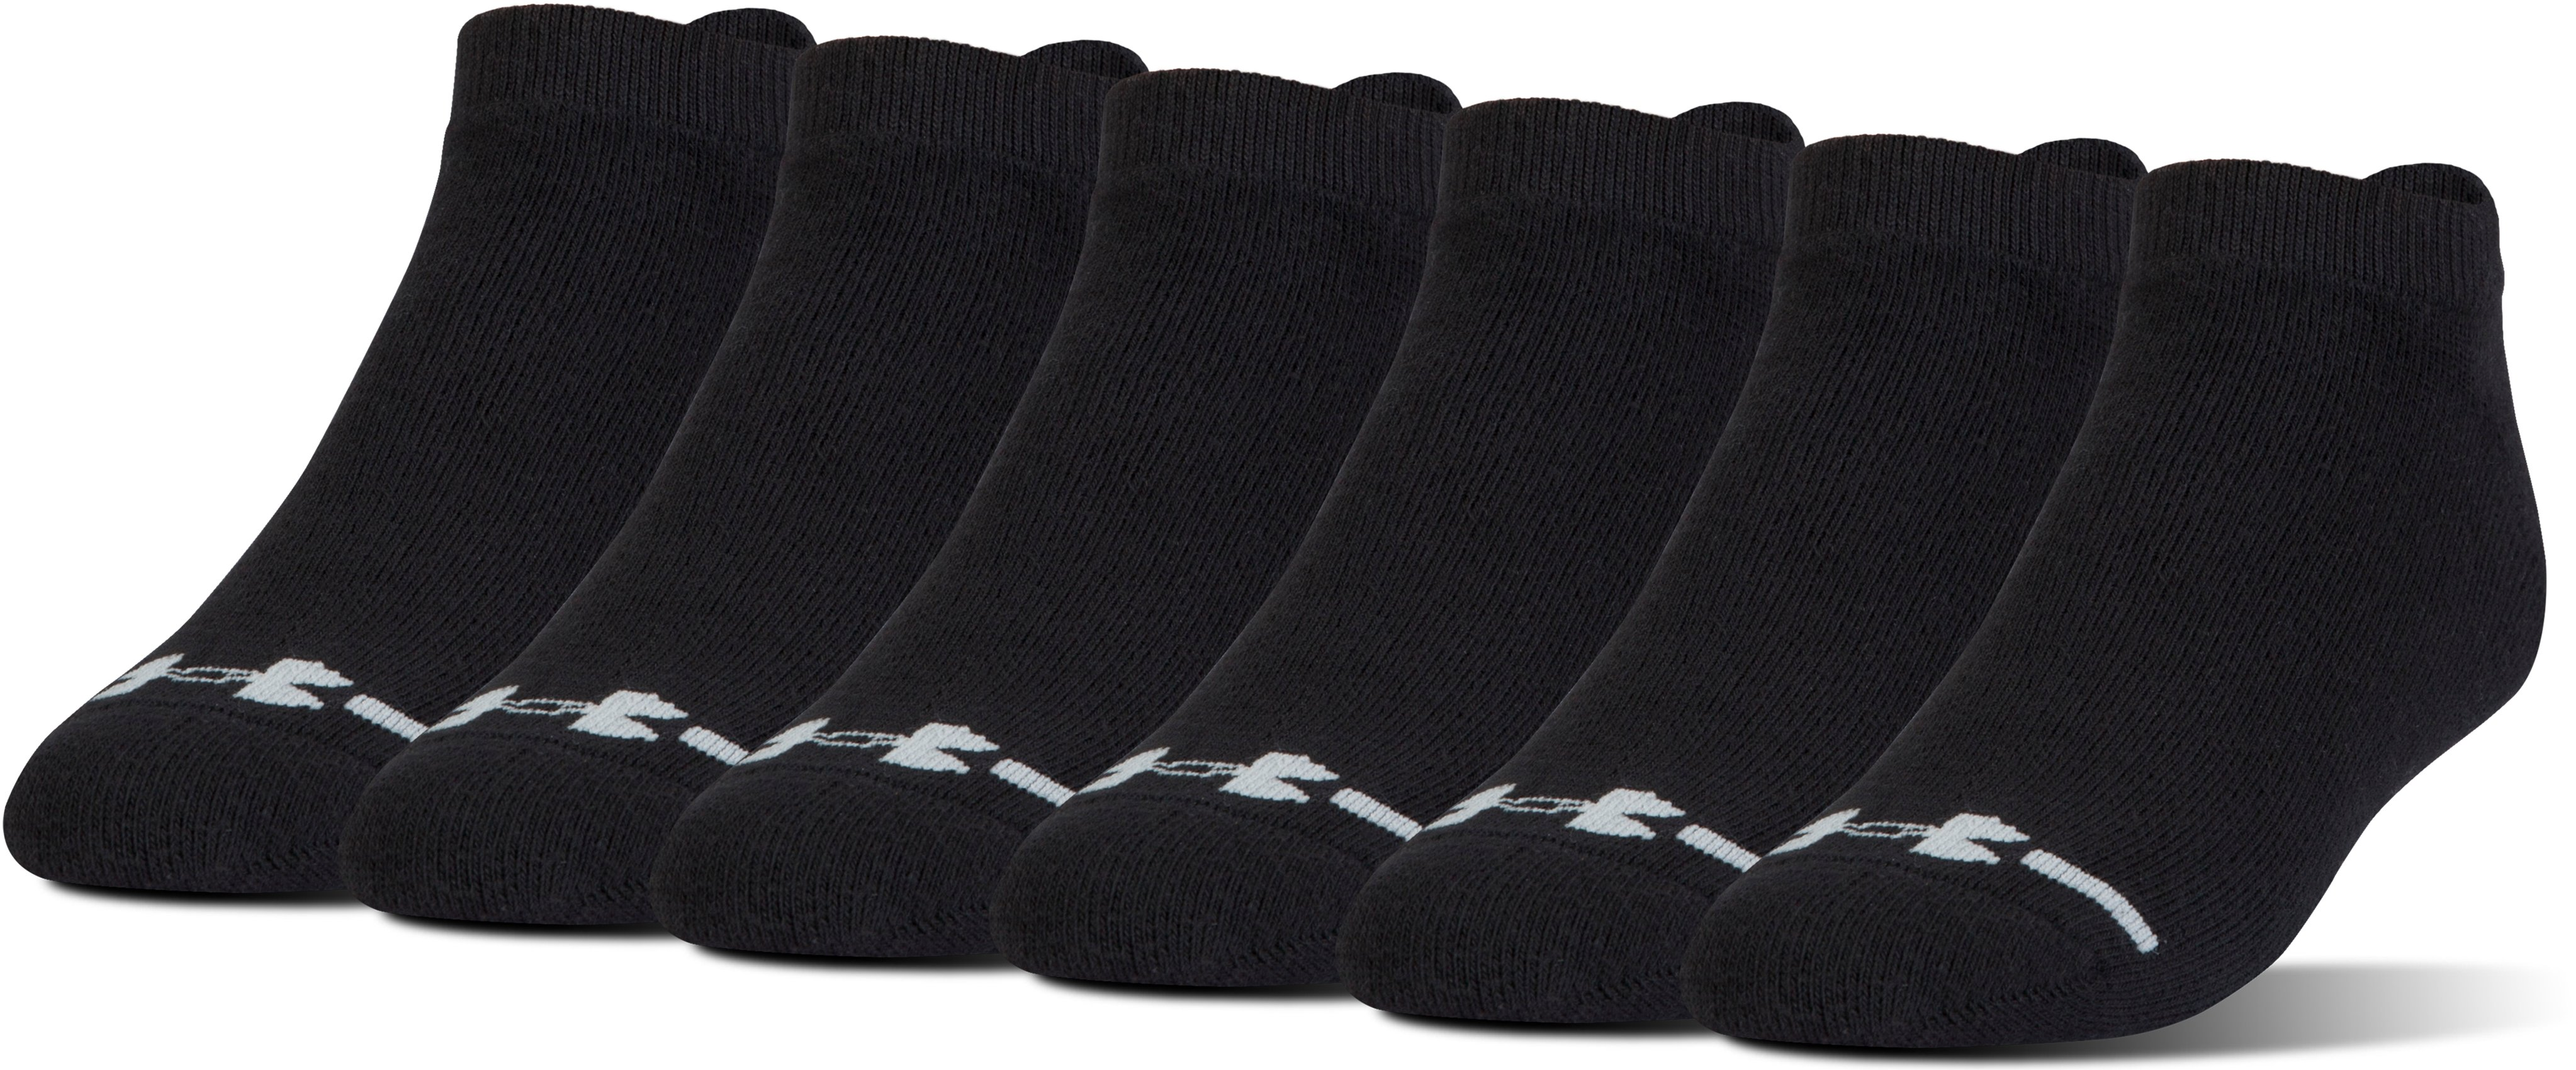 Men's Charged Cotton® Lo Cut 6-Pack, Black